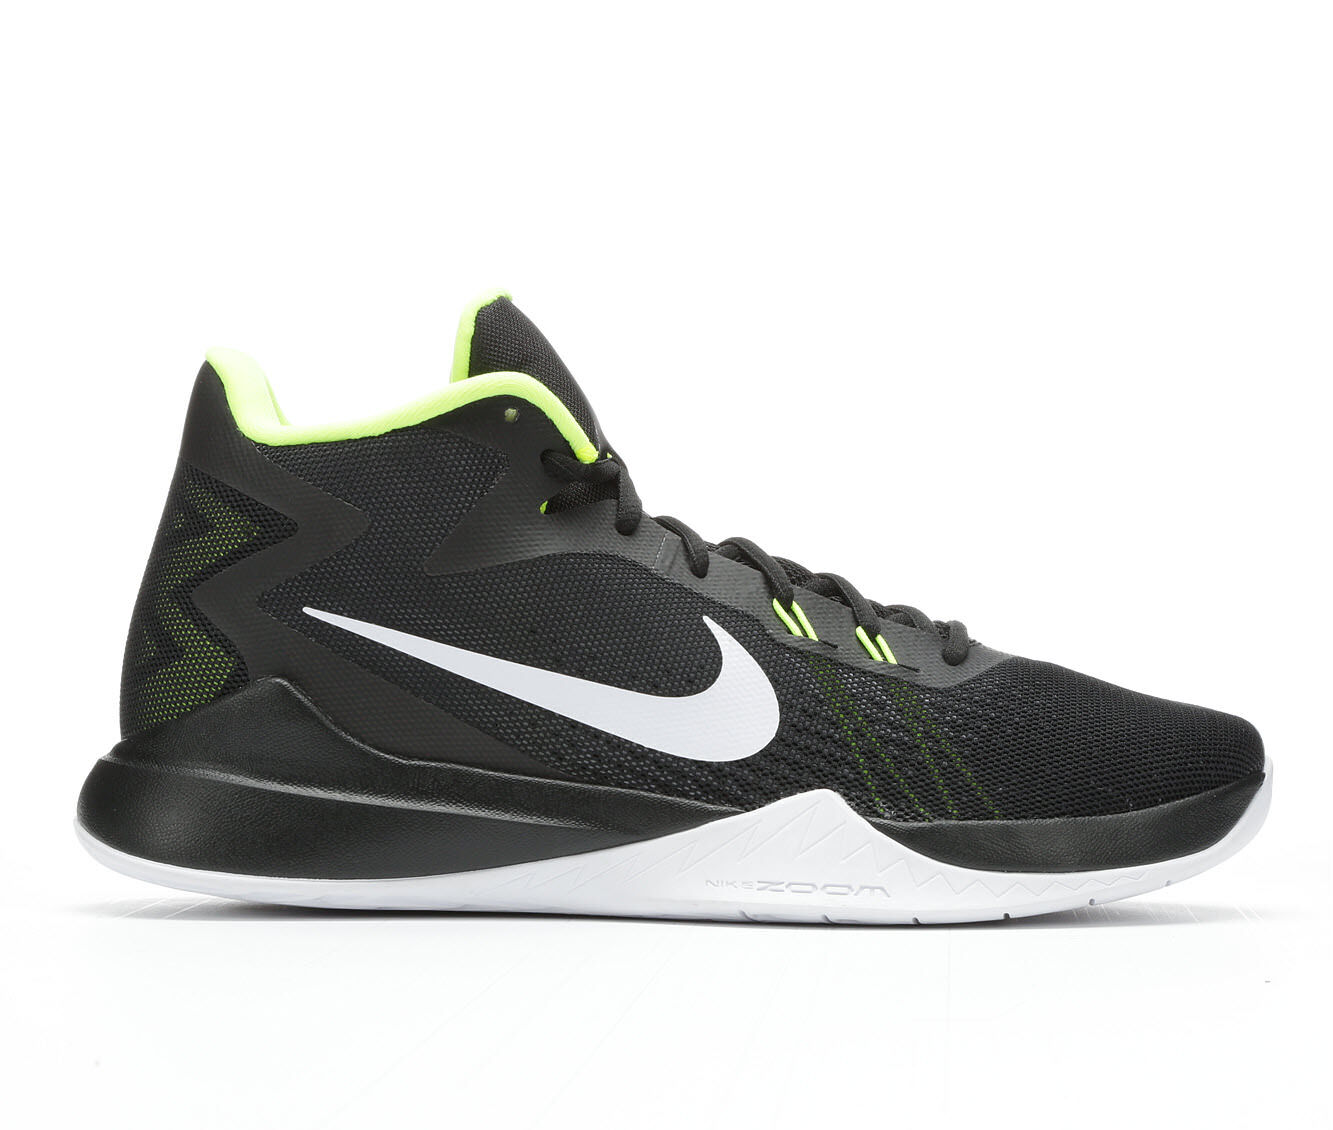 Images. Men's Nike Zoom Evidence Basketball Shoes